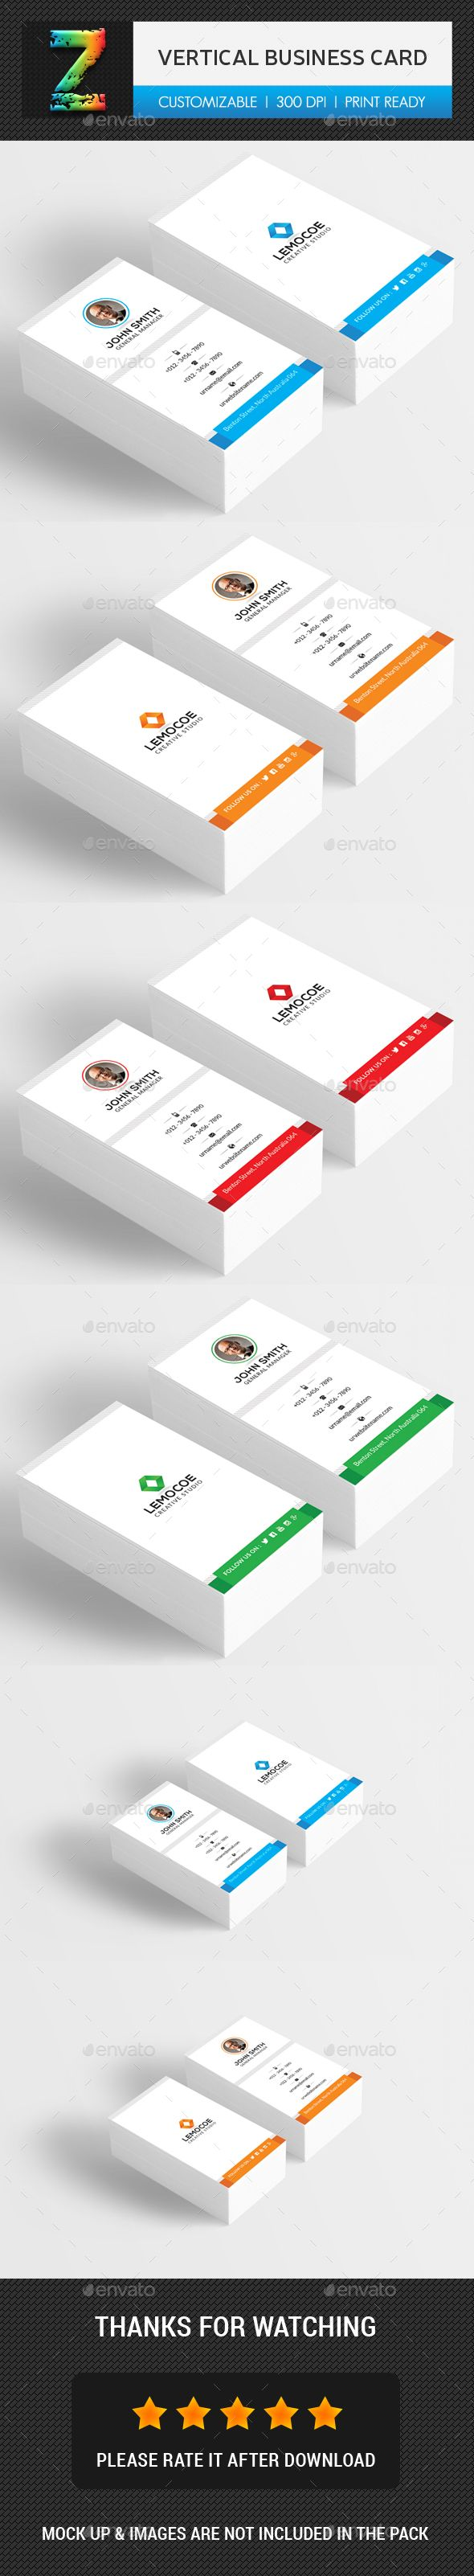 1000 ideas about Vertical Business Cards on Pinterest